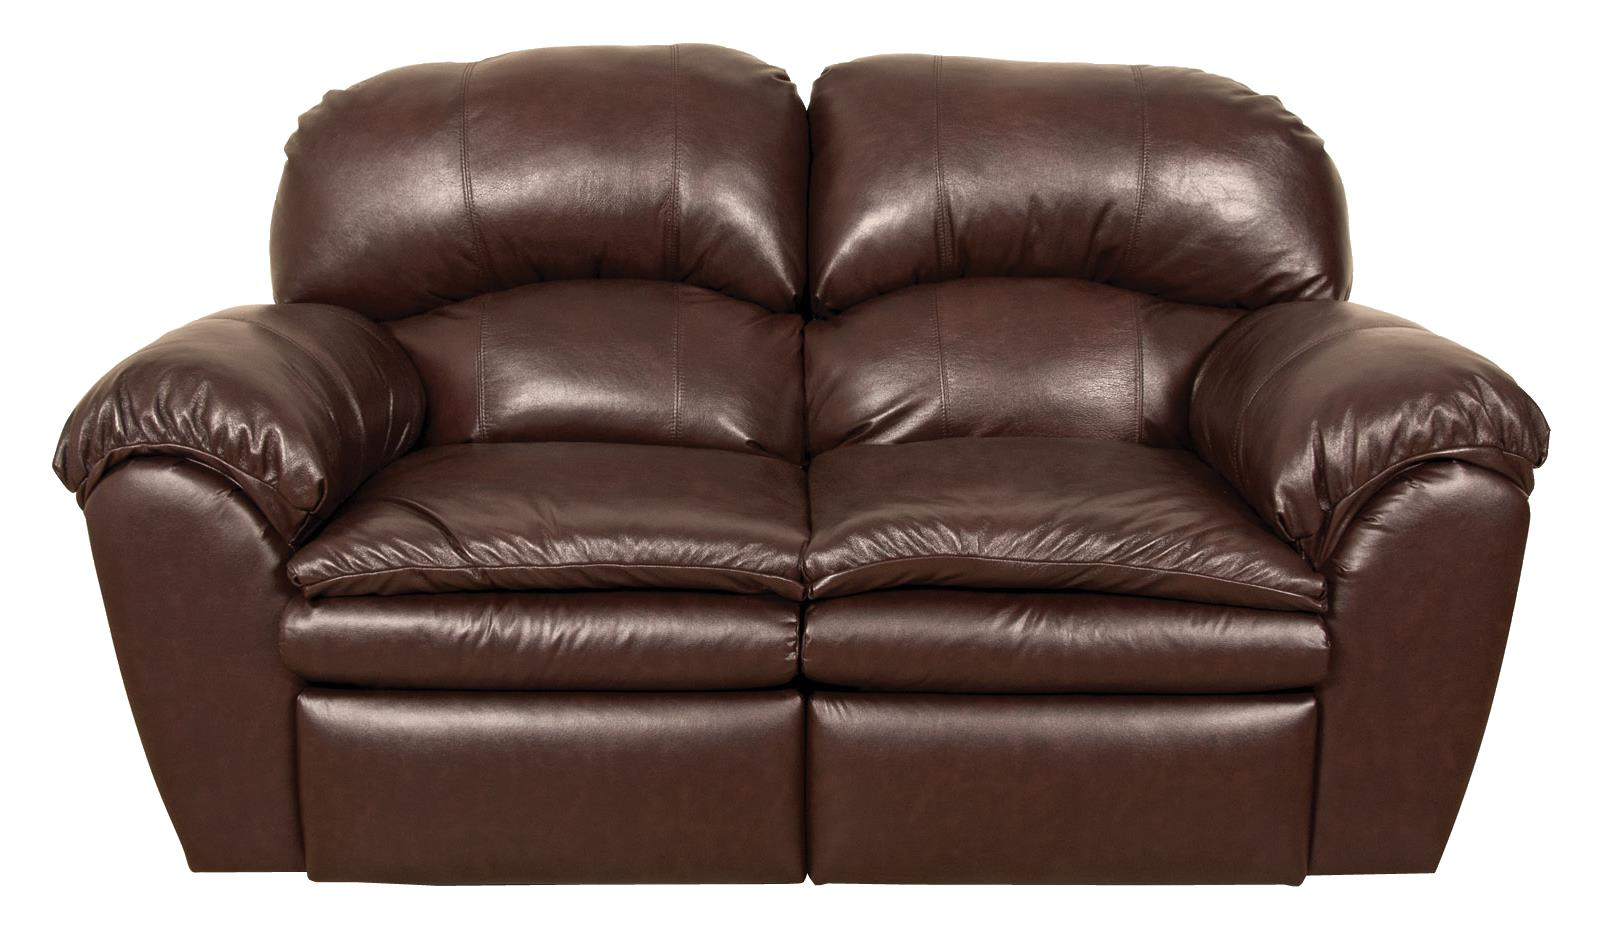 England Oakland Double Reclining Loveseat - Item Number: 7203L